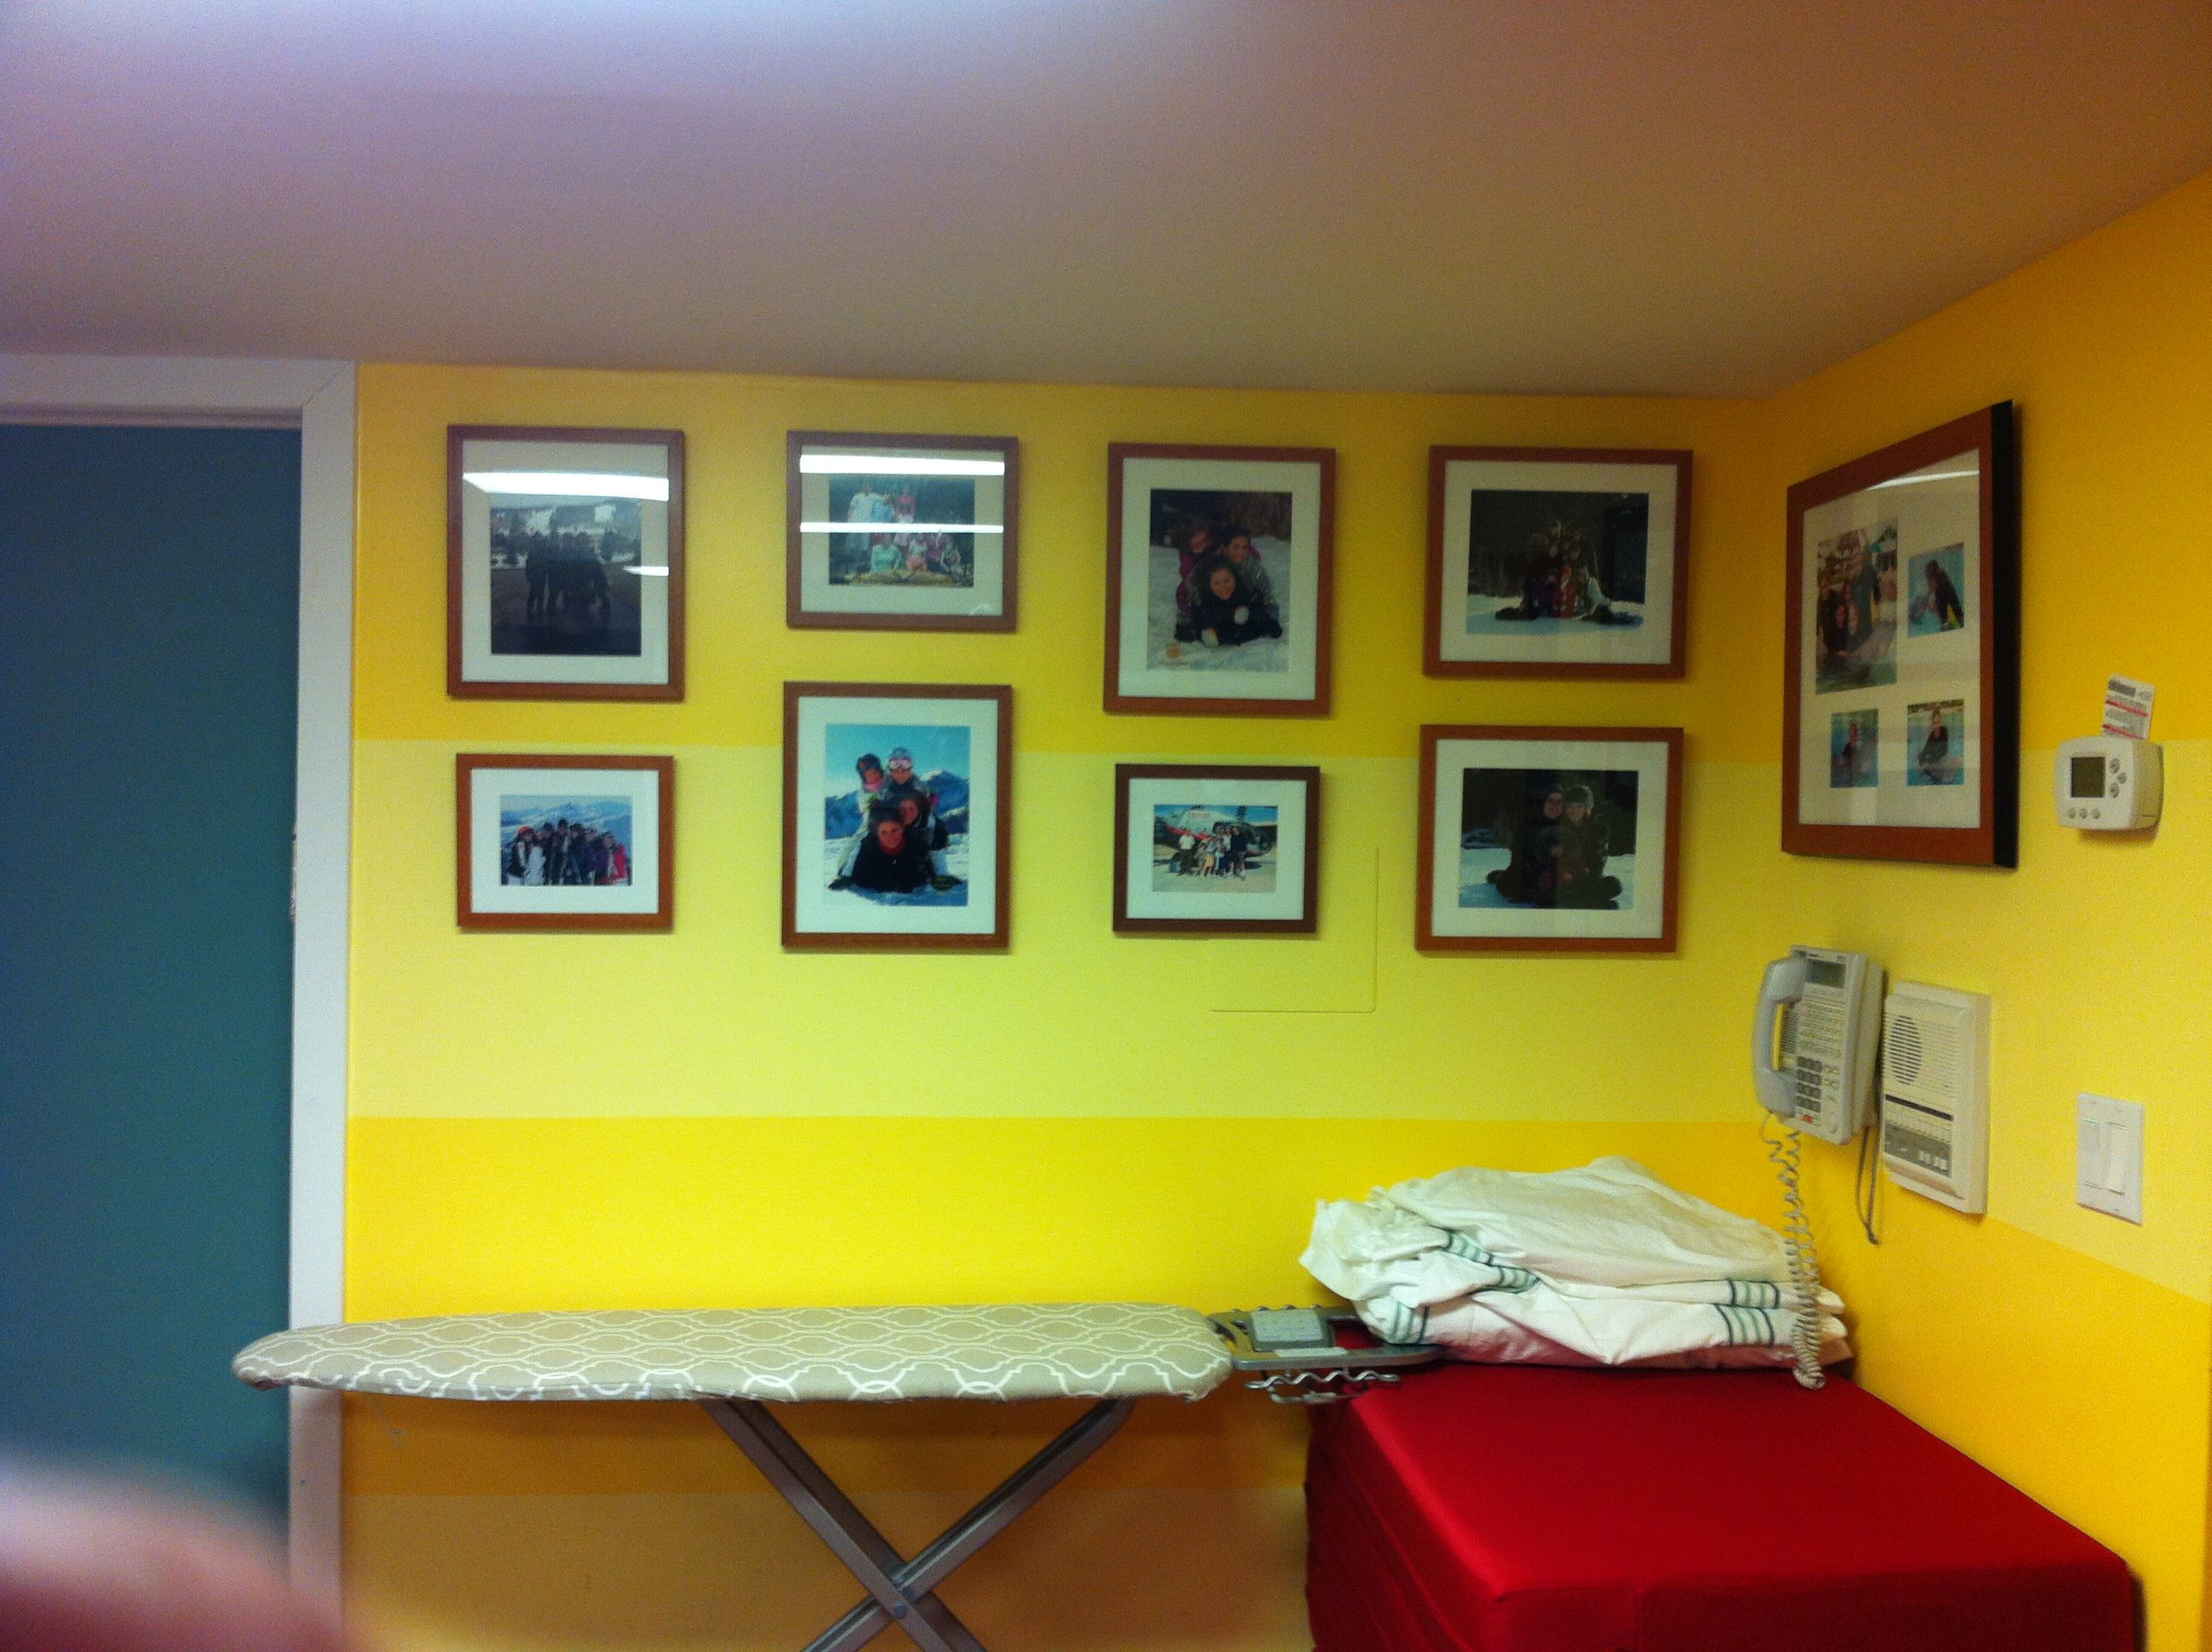 Professional picture hanging service & custom framing by